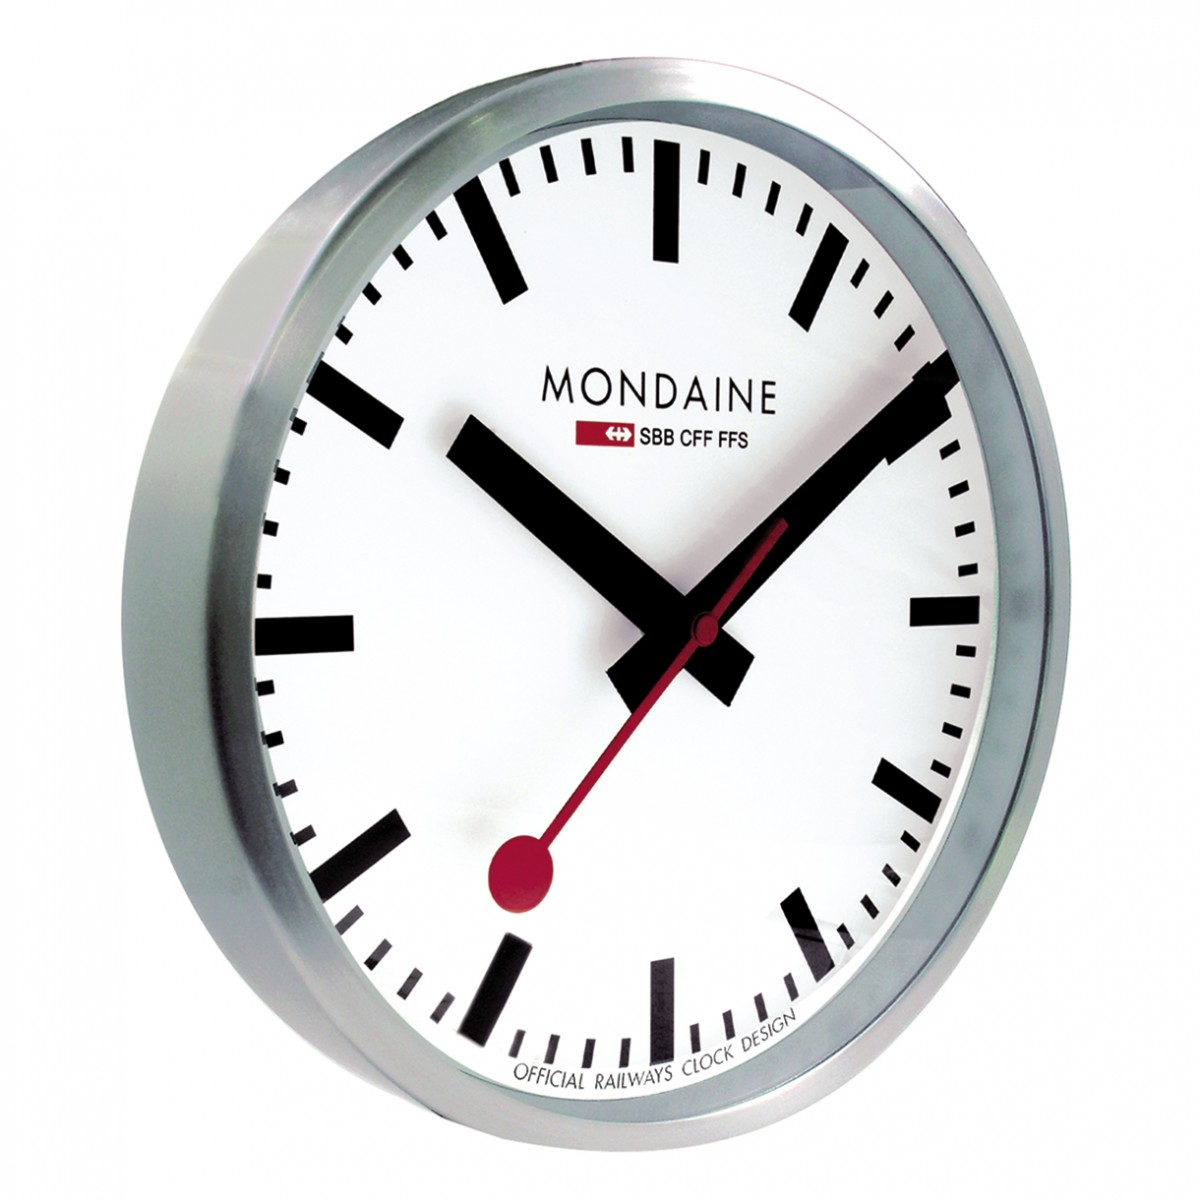 Mondaine Clocks Crown Jewellery